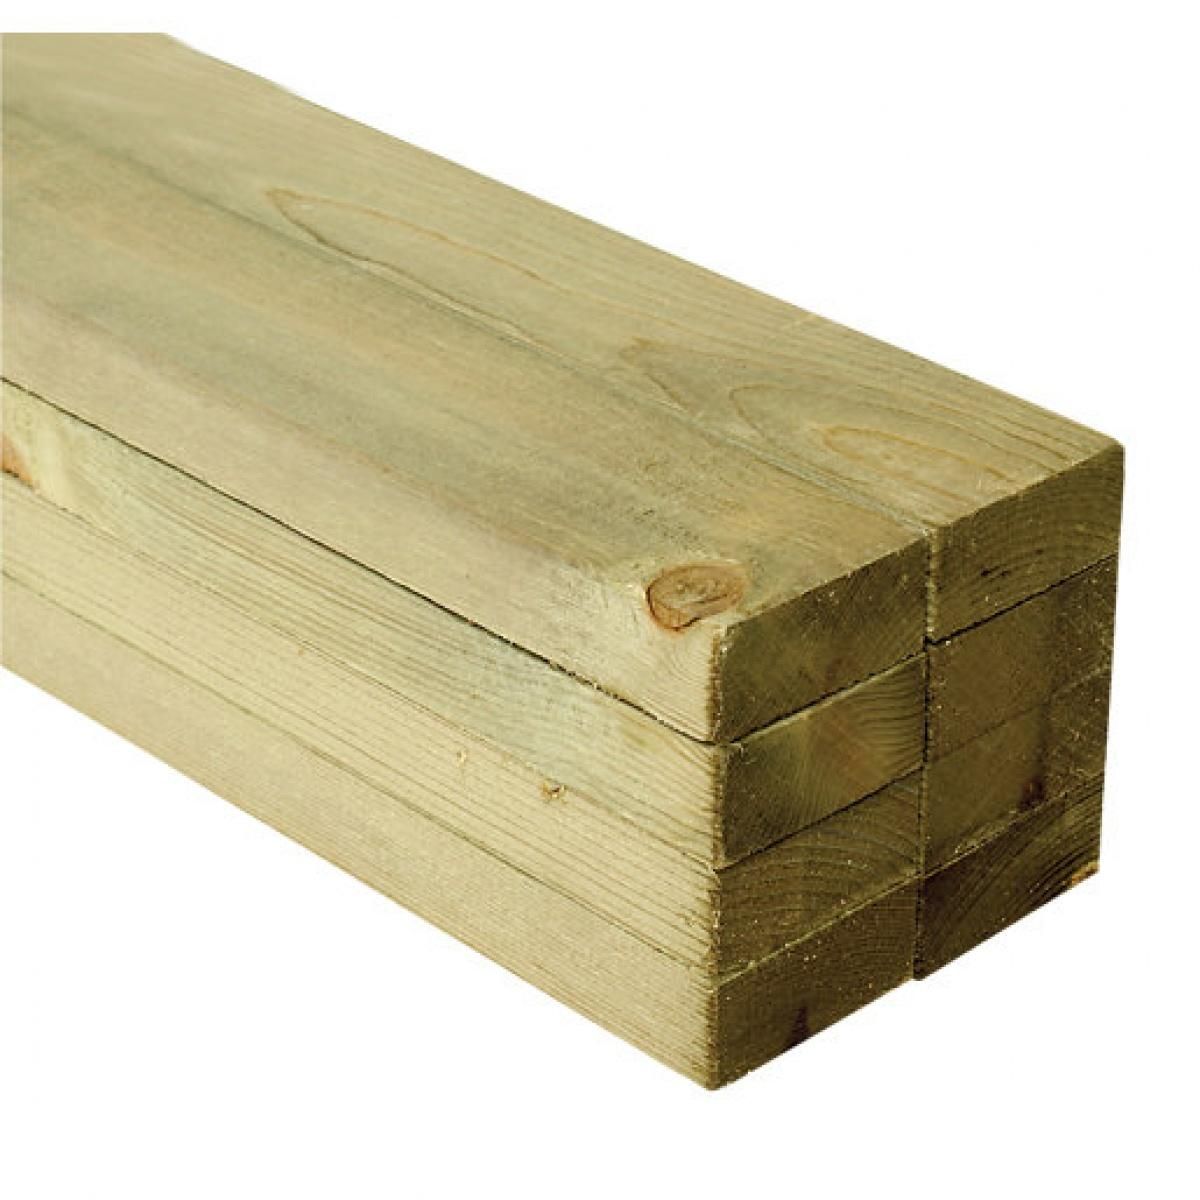 050mm x 075mm - [3x2] Treated Rough Sawn - Nottage Timber Merchants